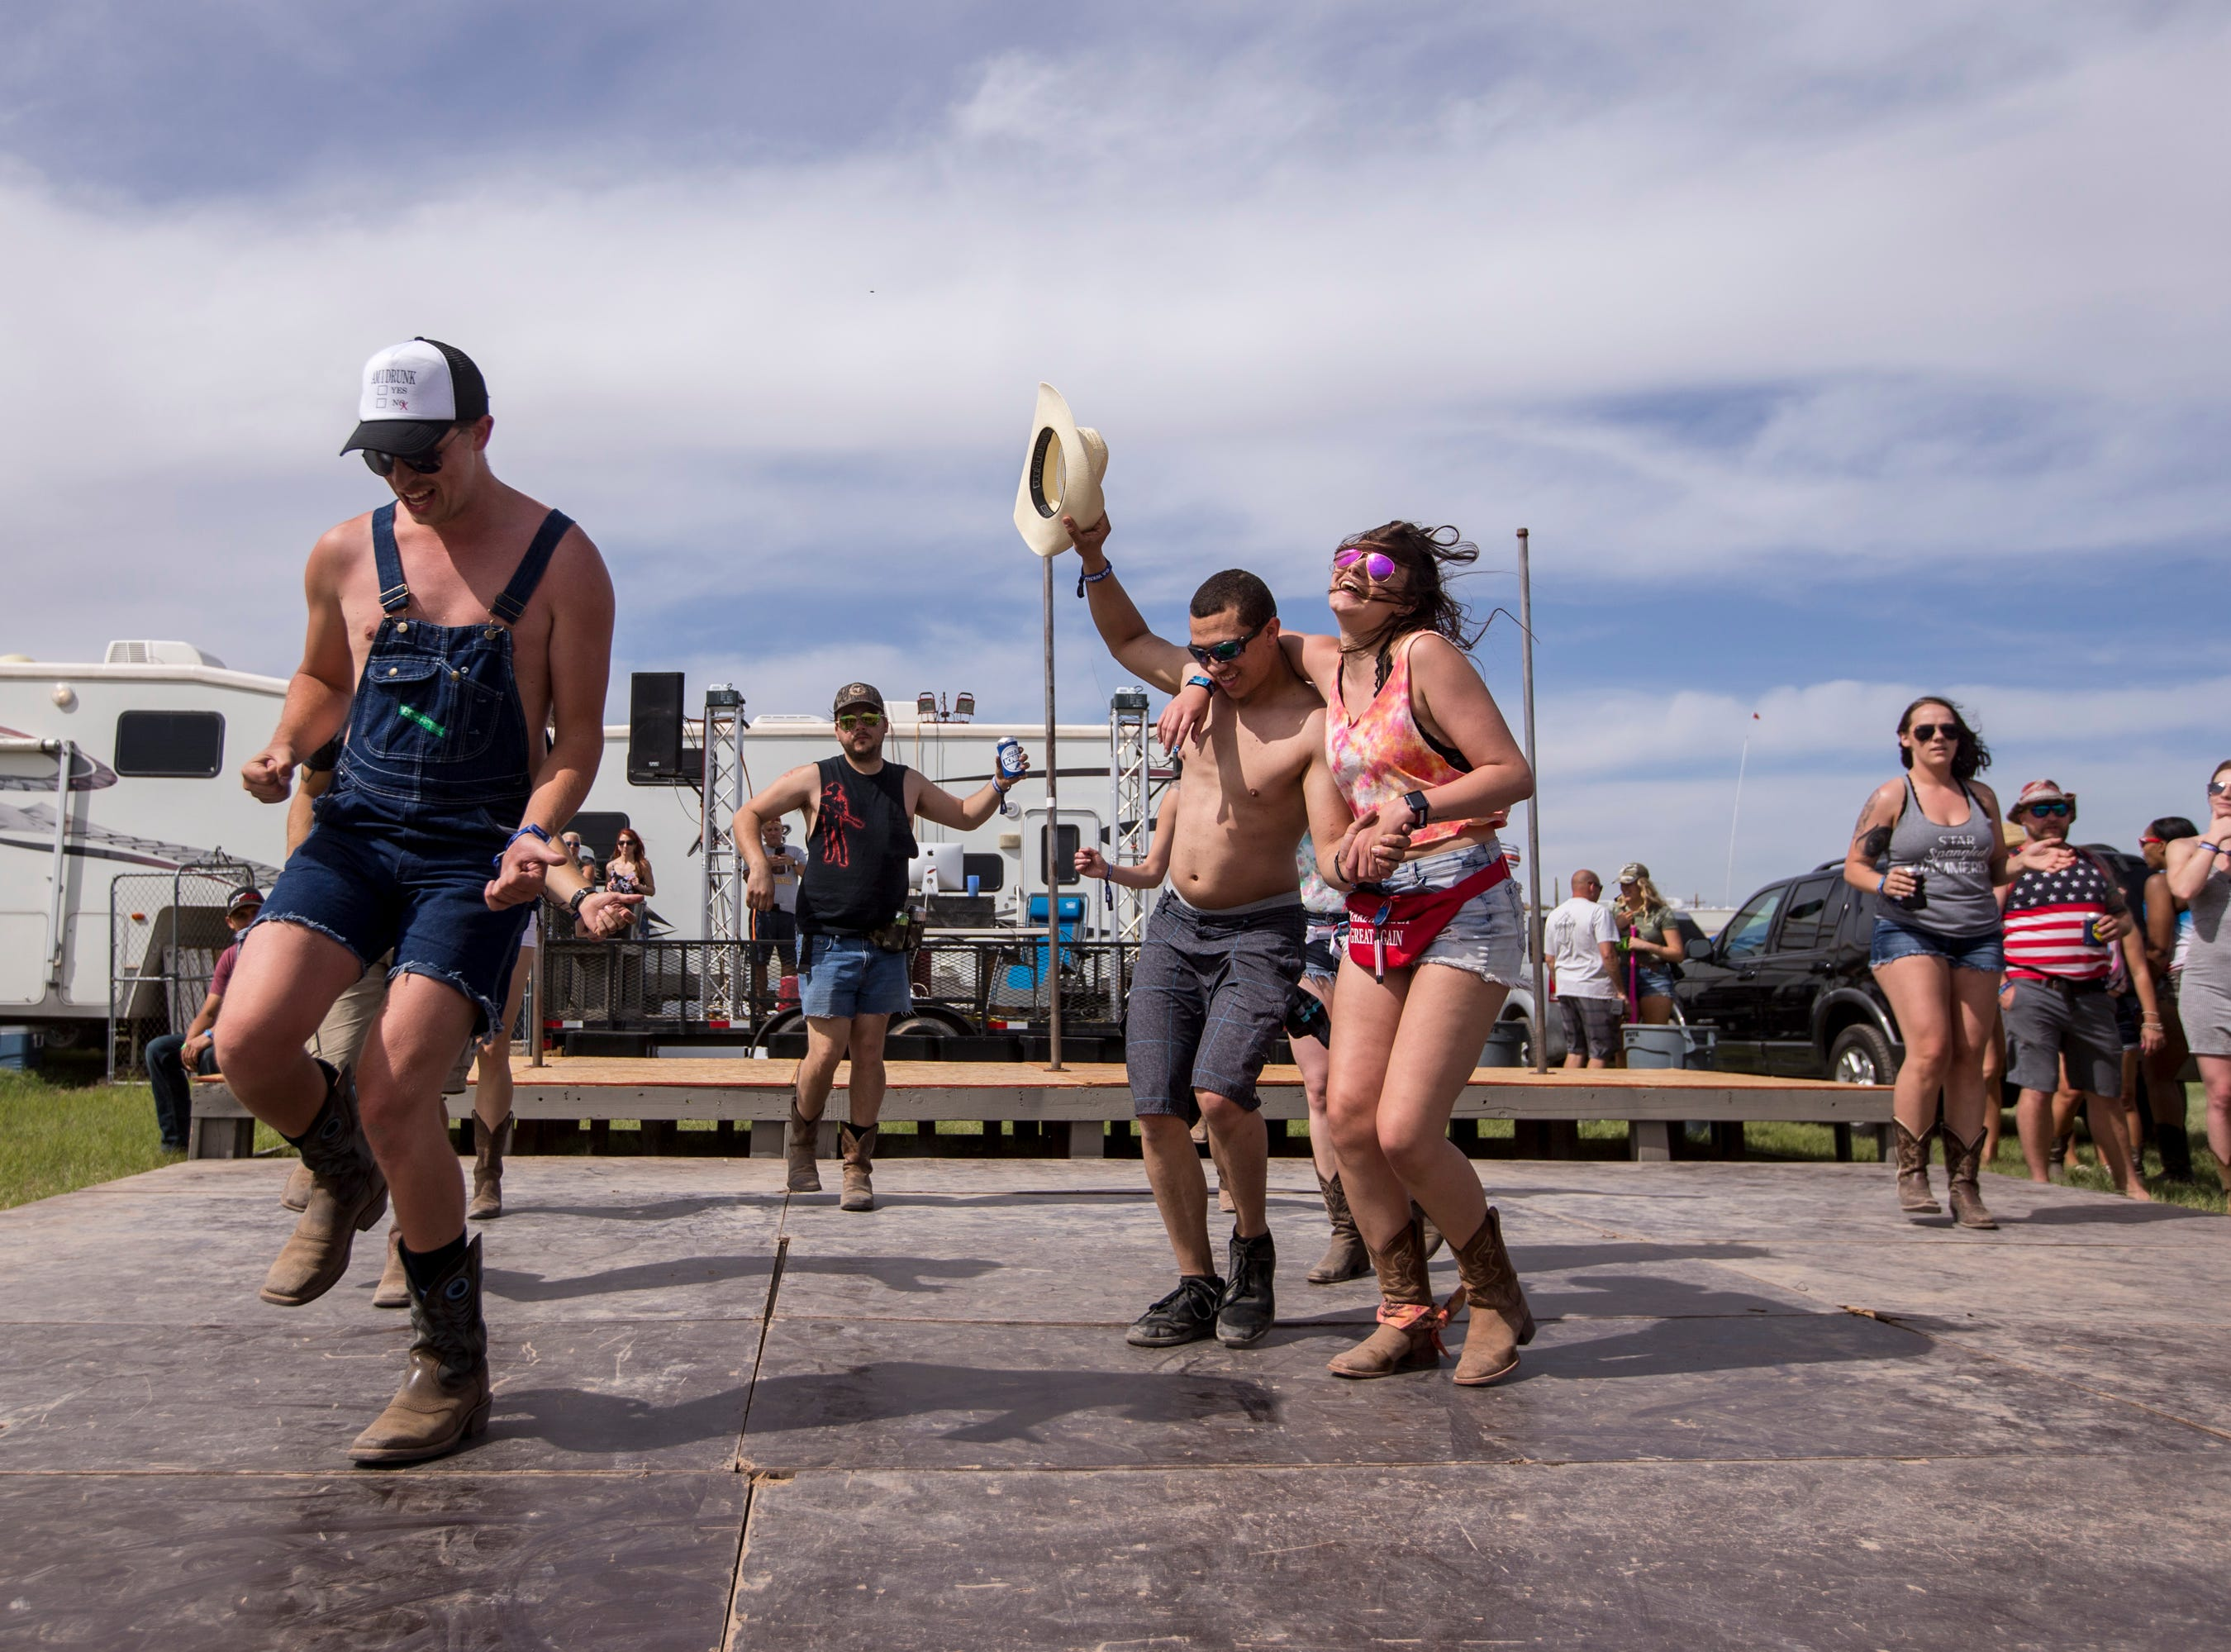 Festival-goers dance at the Crazy Coyote campsite on April 11, 2019, during Day 1 of Country Thunder Arizona in Florence.